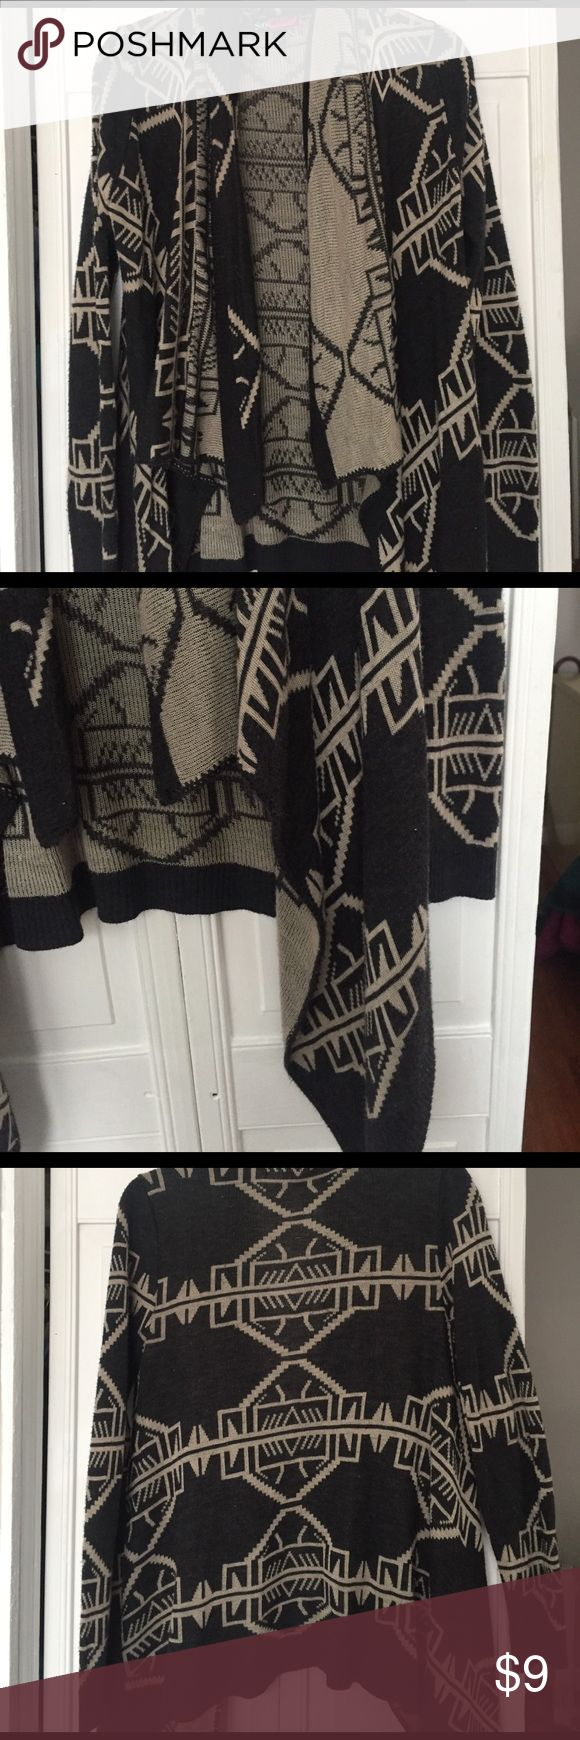 Tribal print cardigan Loose, comfy cardigan. Very flowy and can dress up or down. Sweaters Cardigans